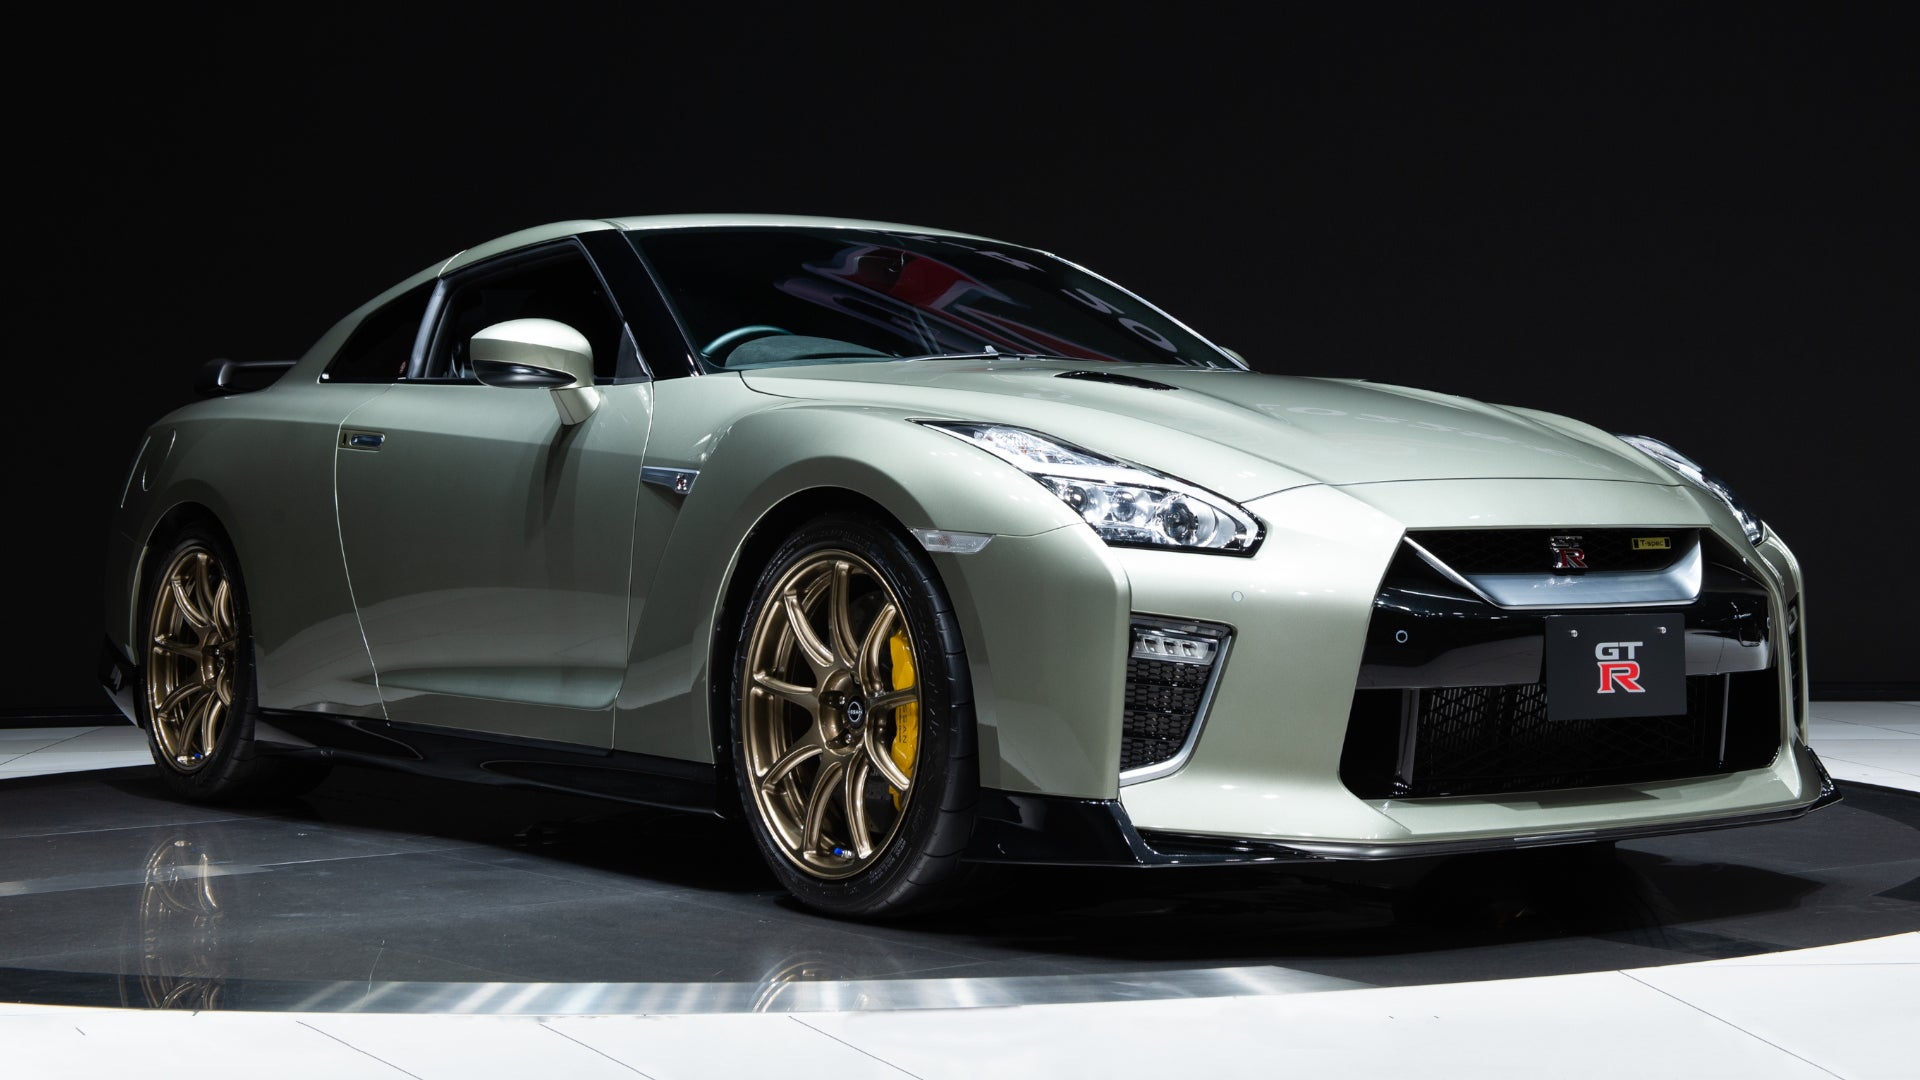 Nissan GT-R Is Lifeless in Australia After This Yr Due to New Crash Regs